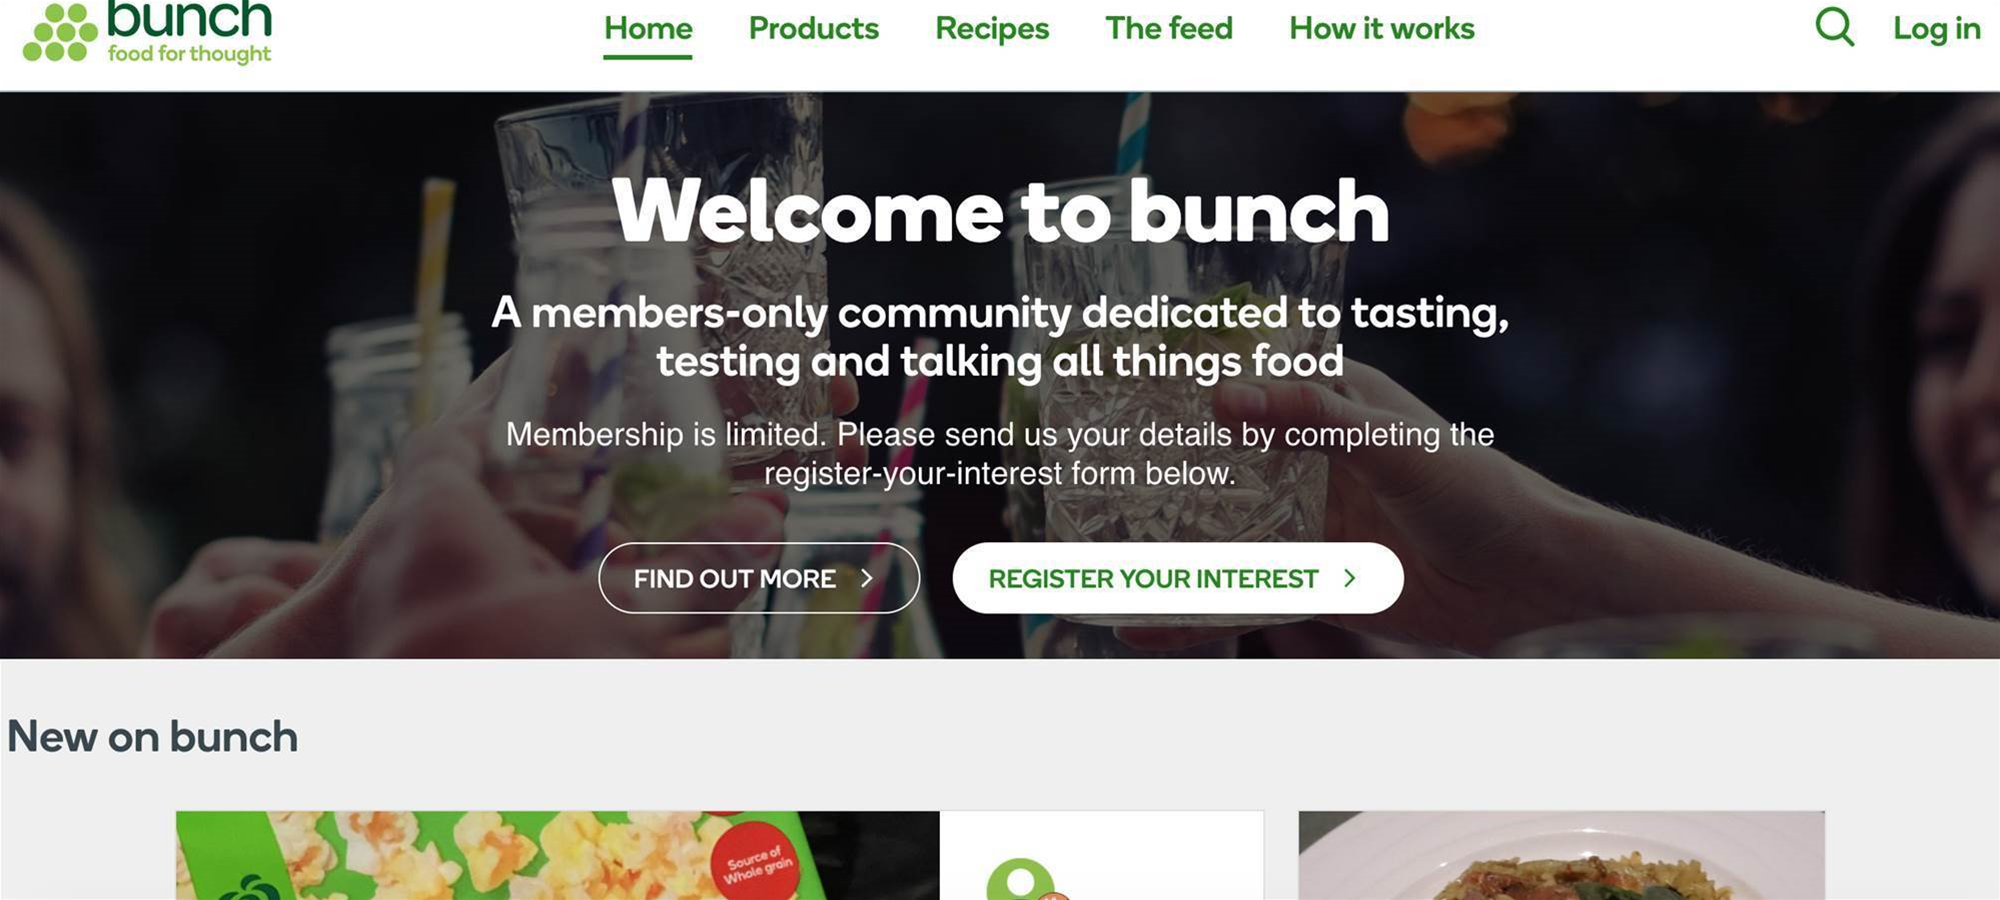 How Woolies used Google machine learning to scale Bunch